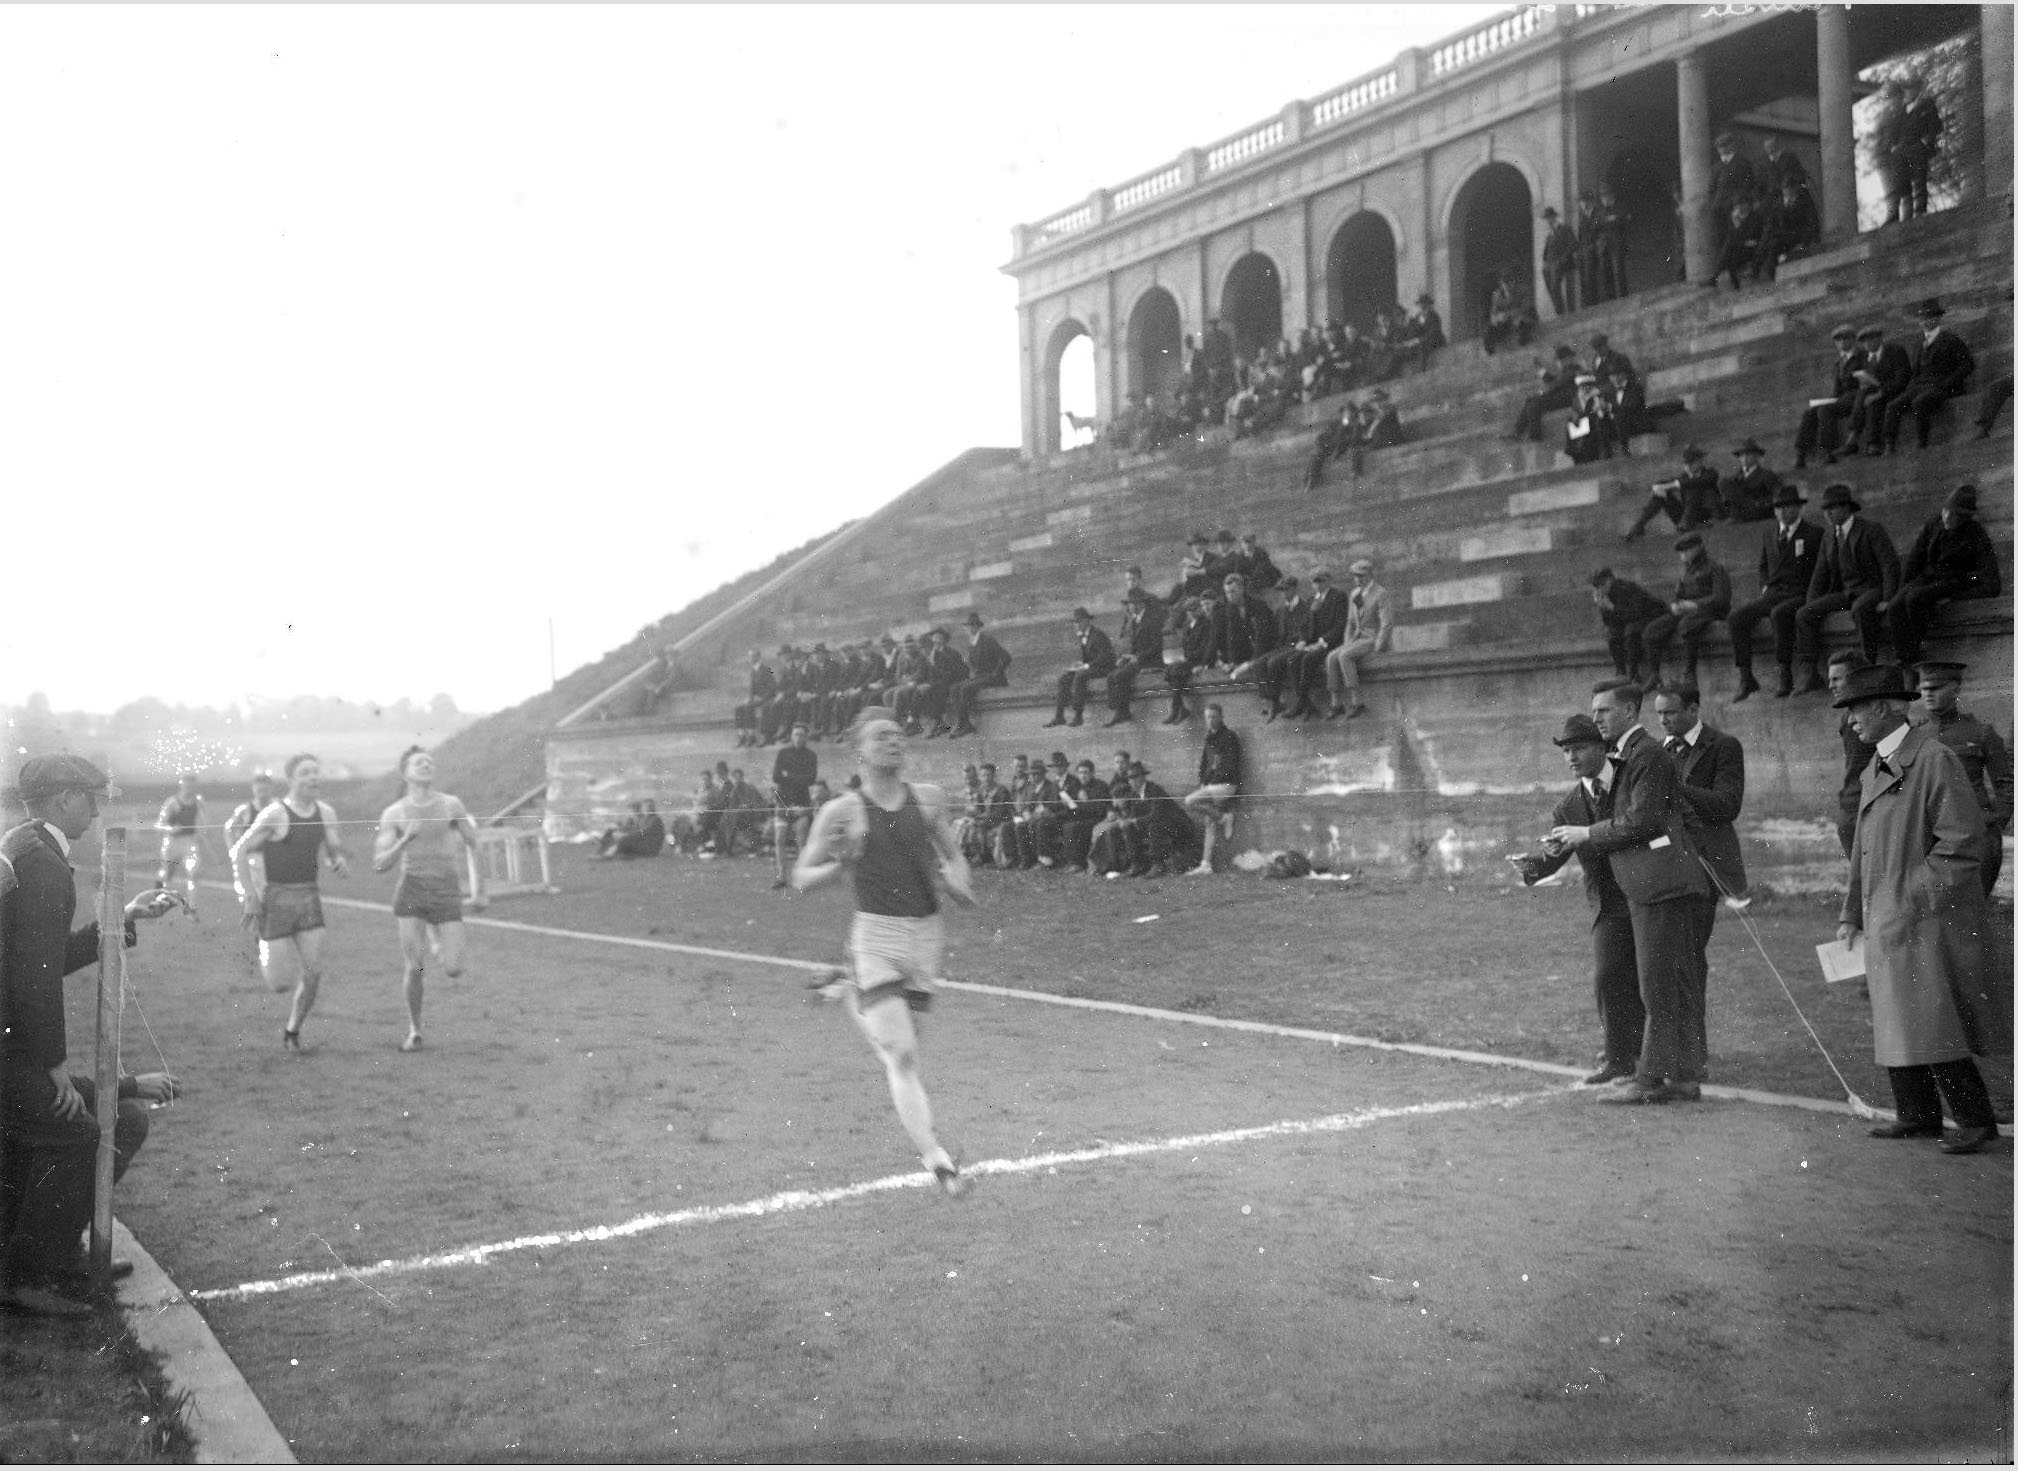 U.Va. Track Meet, 1917 (MSS 9862. Holsinger Studio Collection. Image by Digital Curation Services)